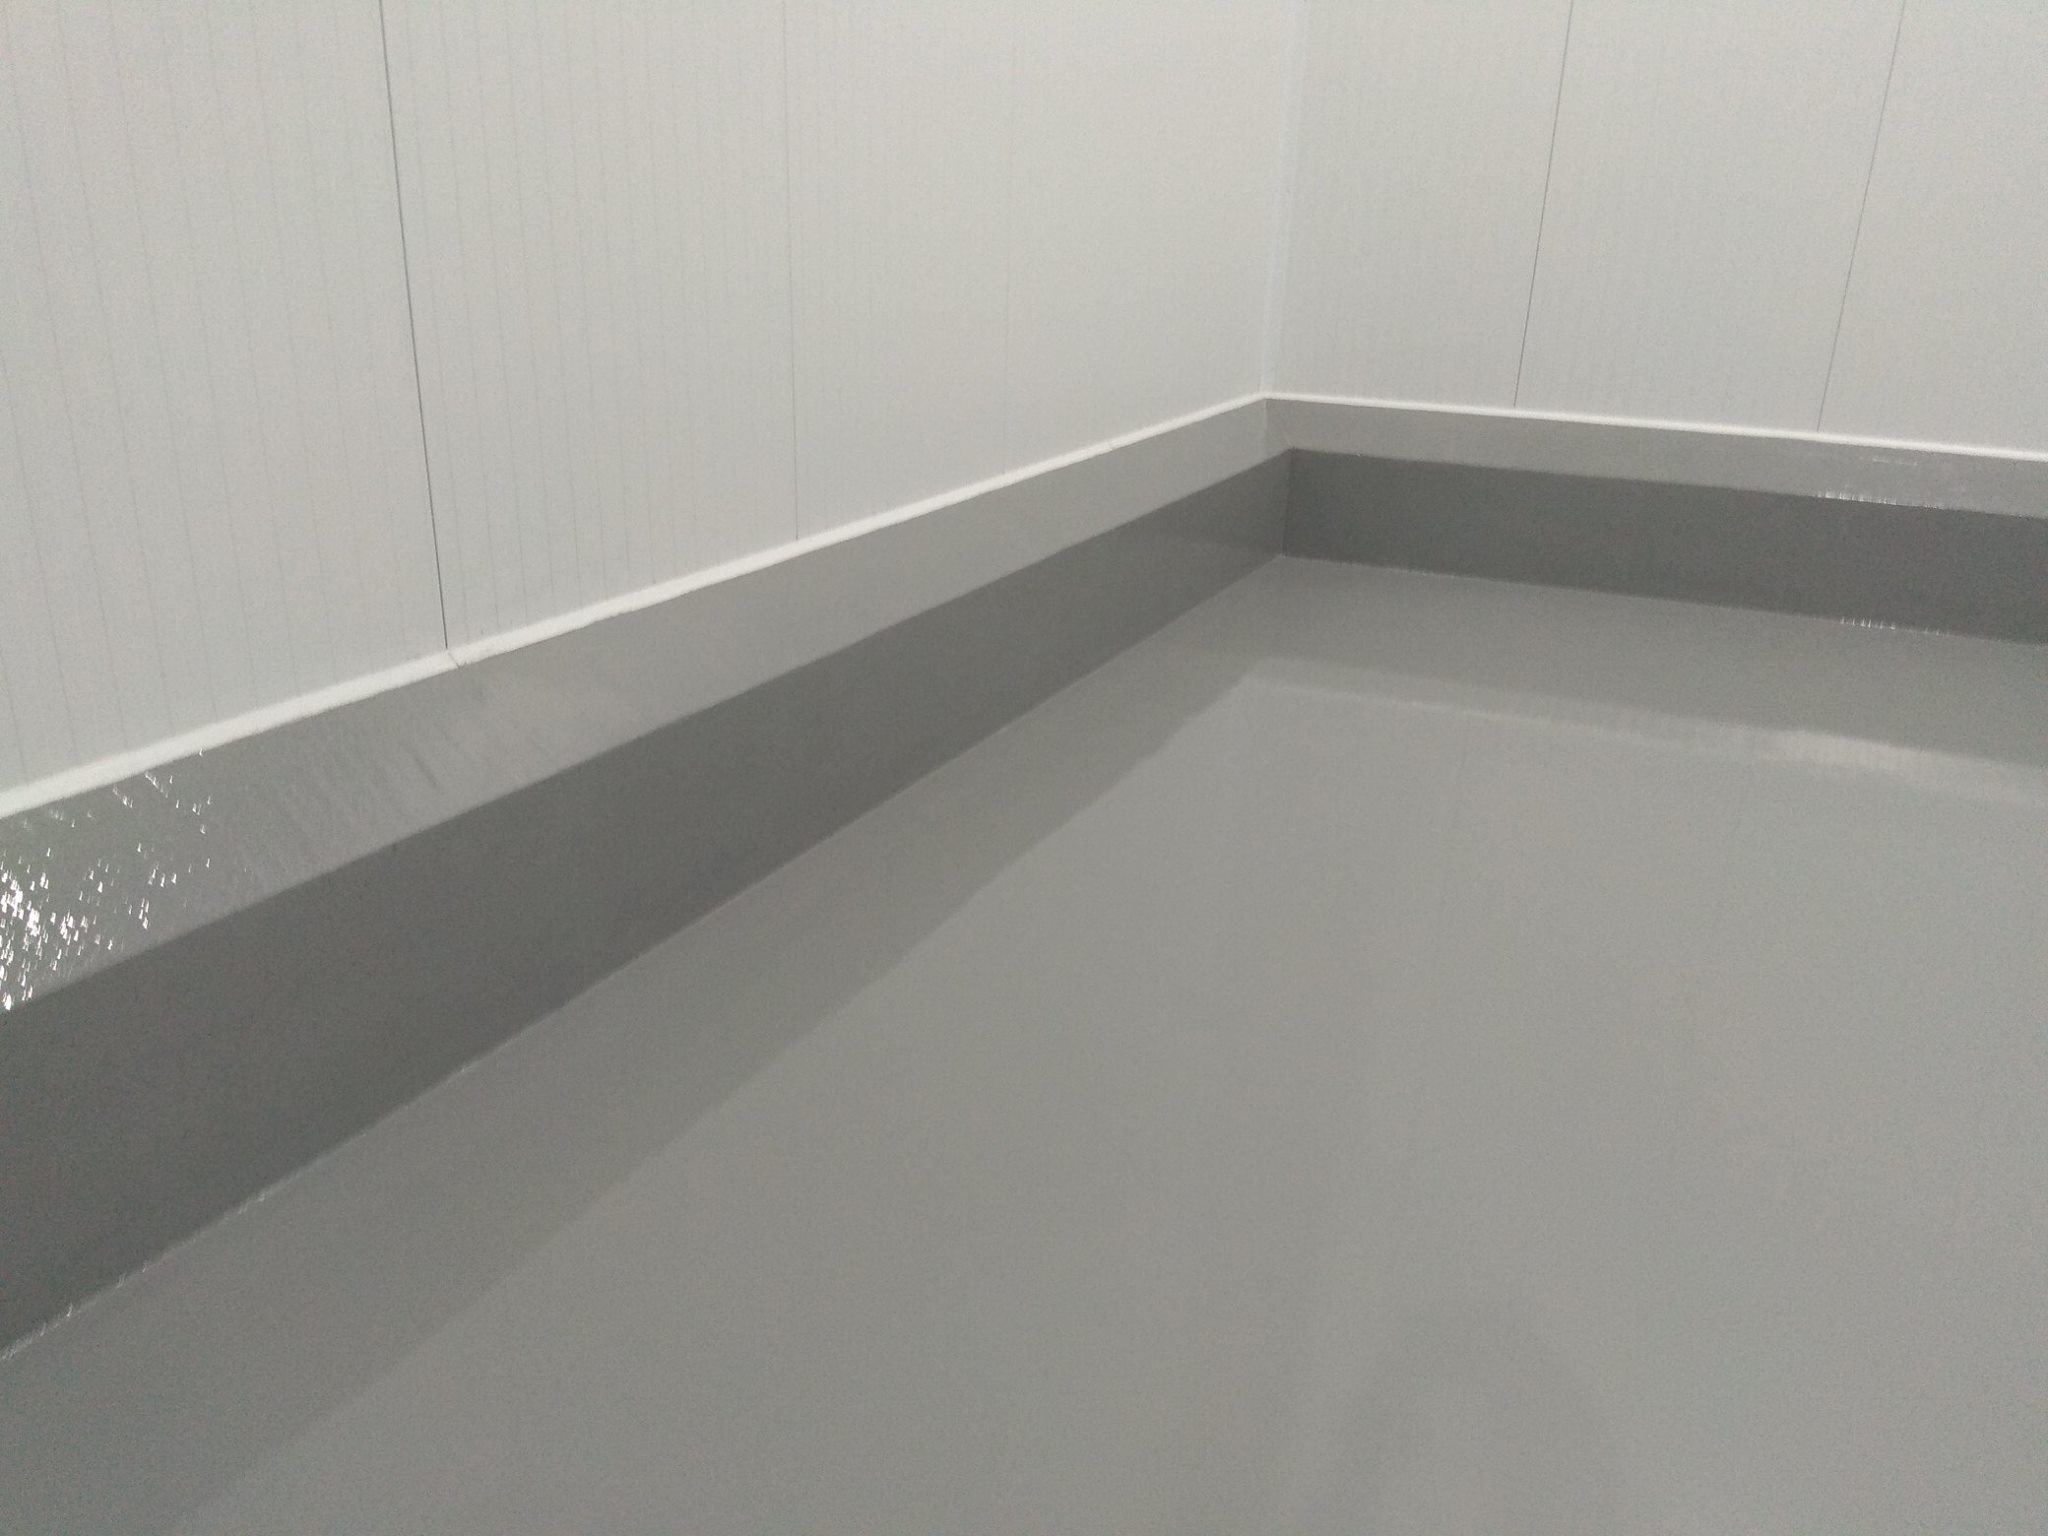 Kerb and floor coated in epoxy paint.